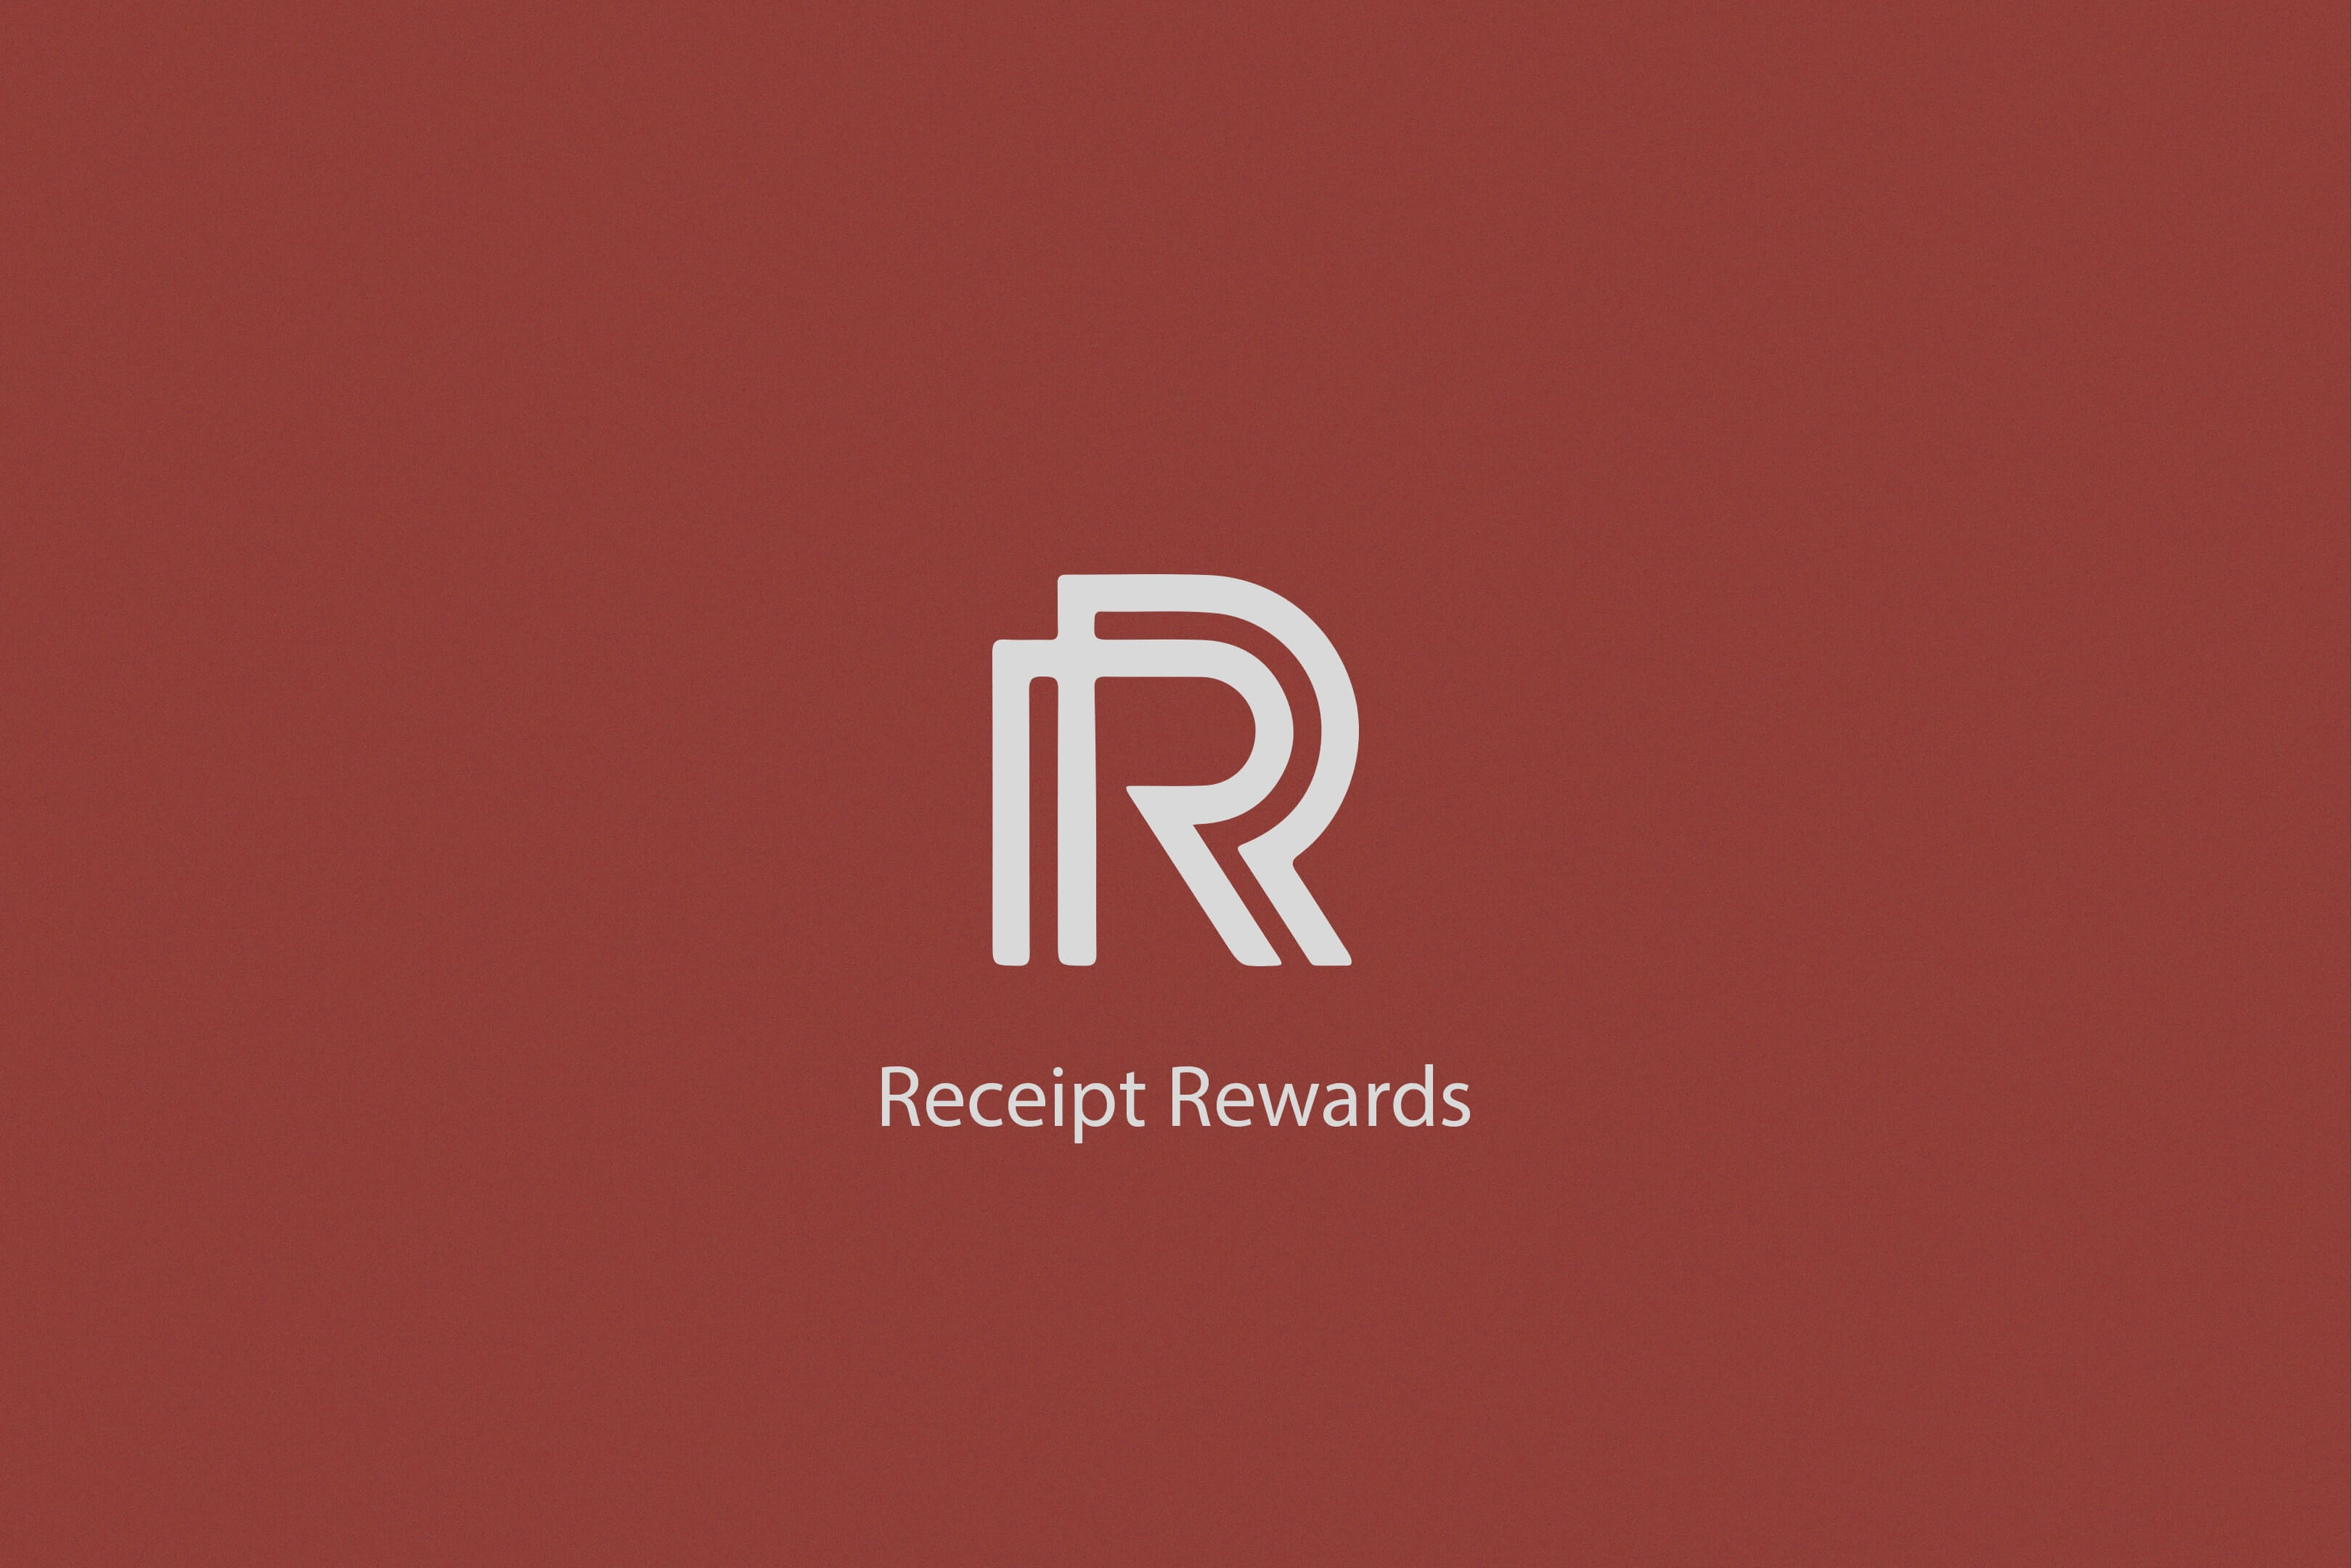 Receipt Rewards